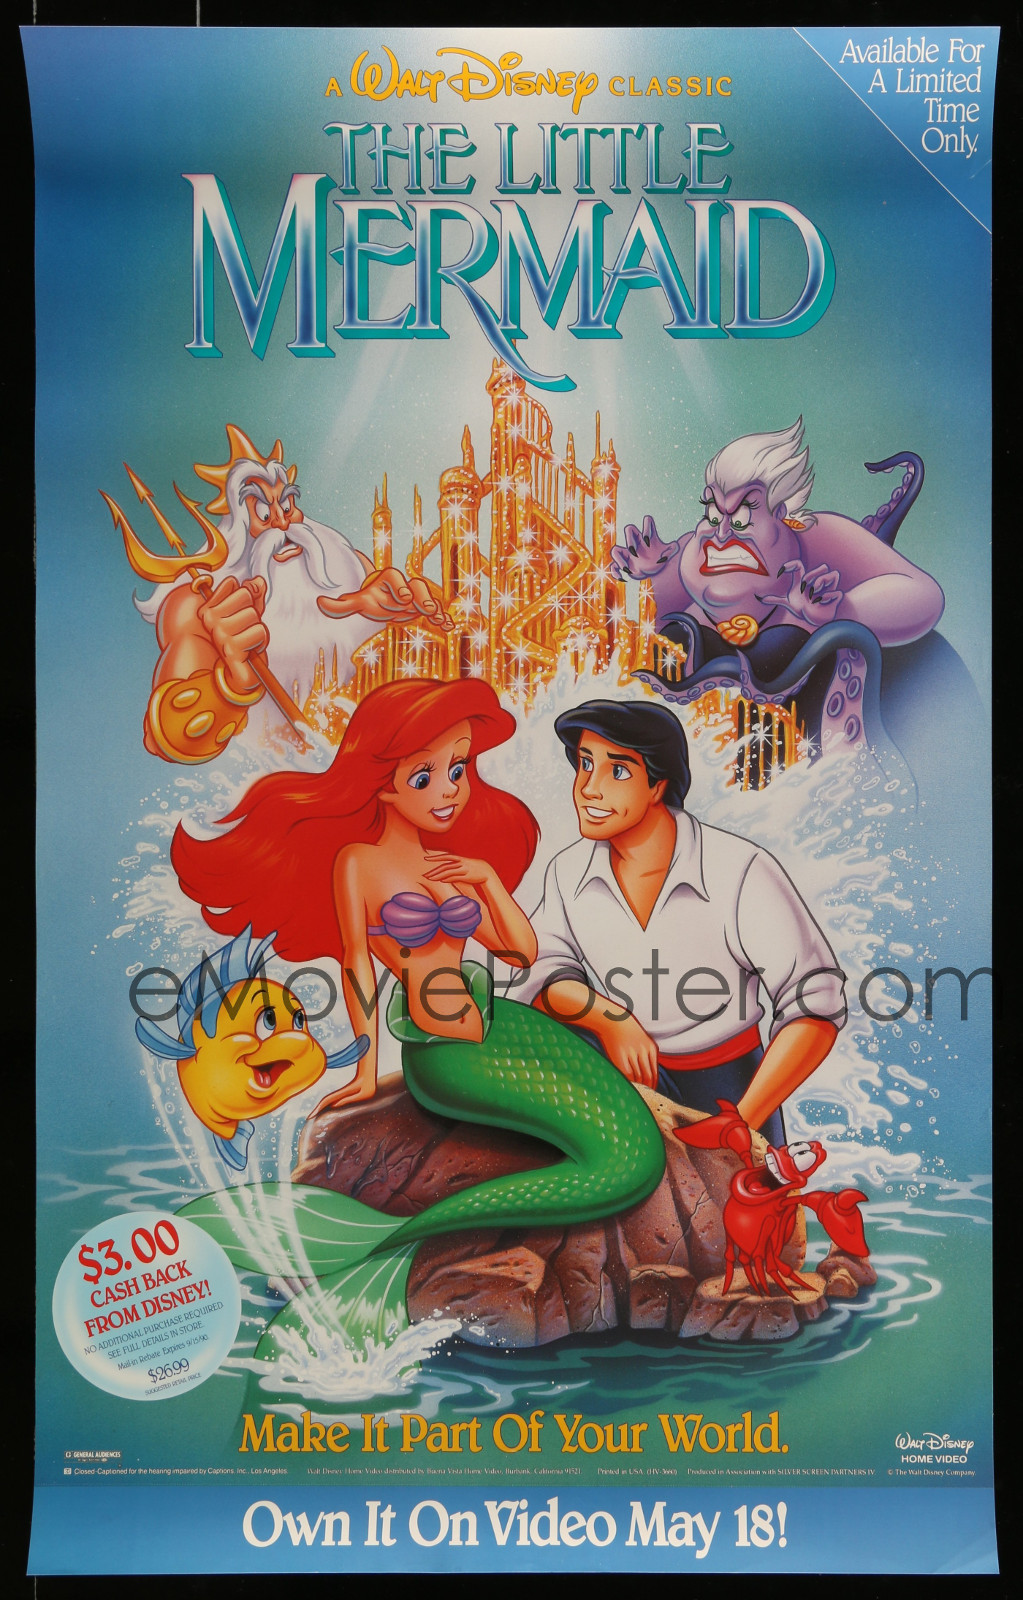 The Little Mermaid 2A323 A Part Of A Lot 18 Unfolded Single-Sided Video Posters '90S A Variety Of Movie Images!